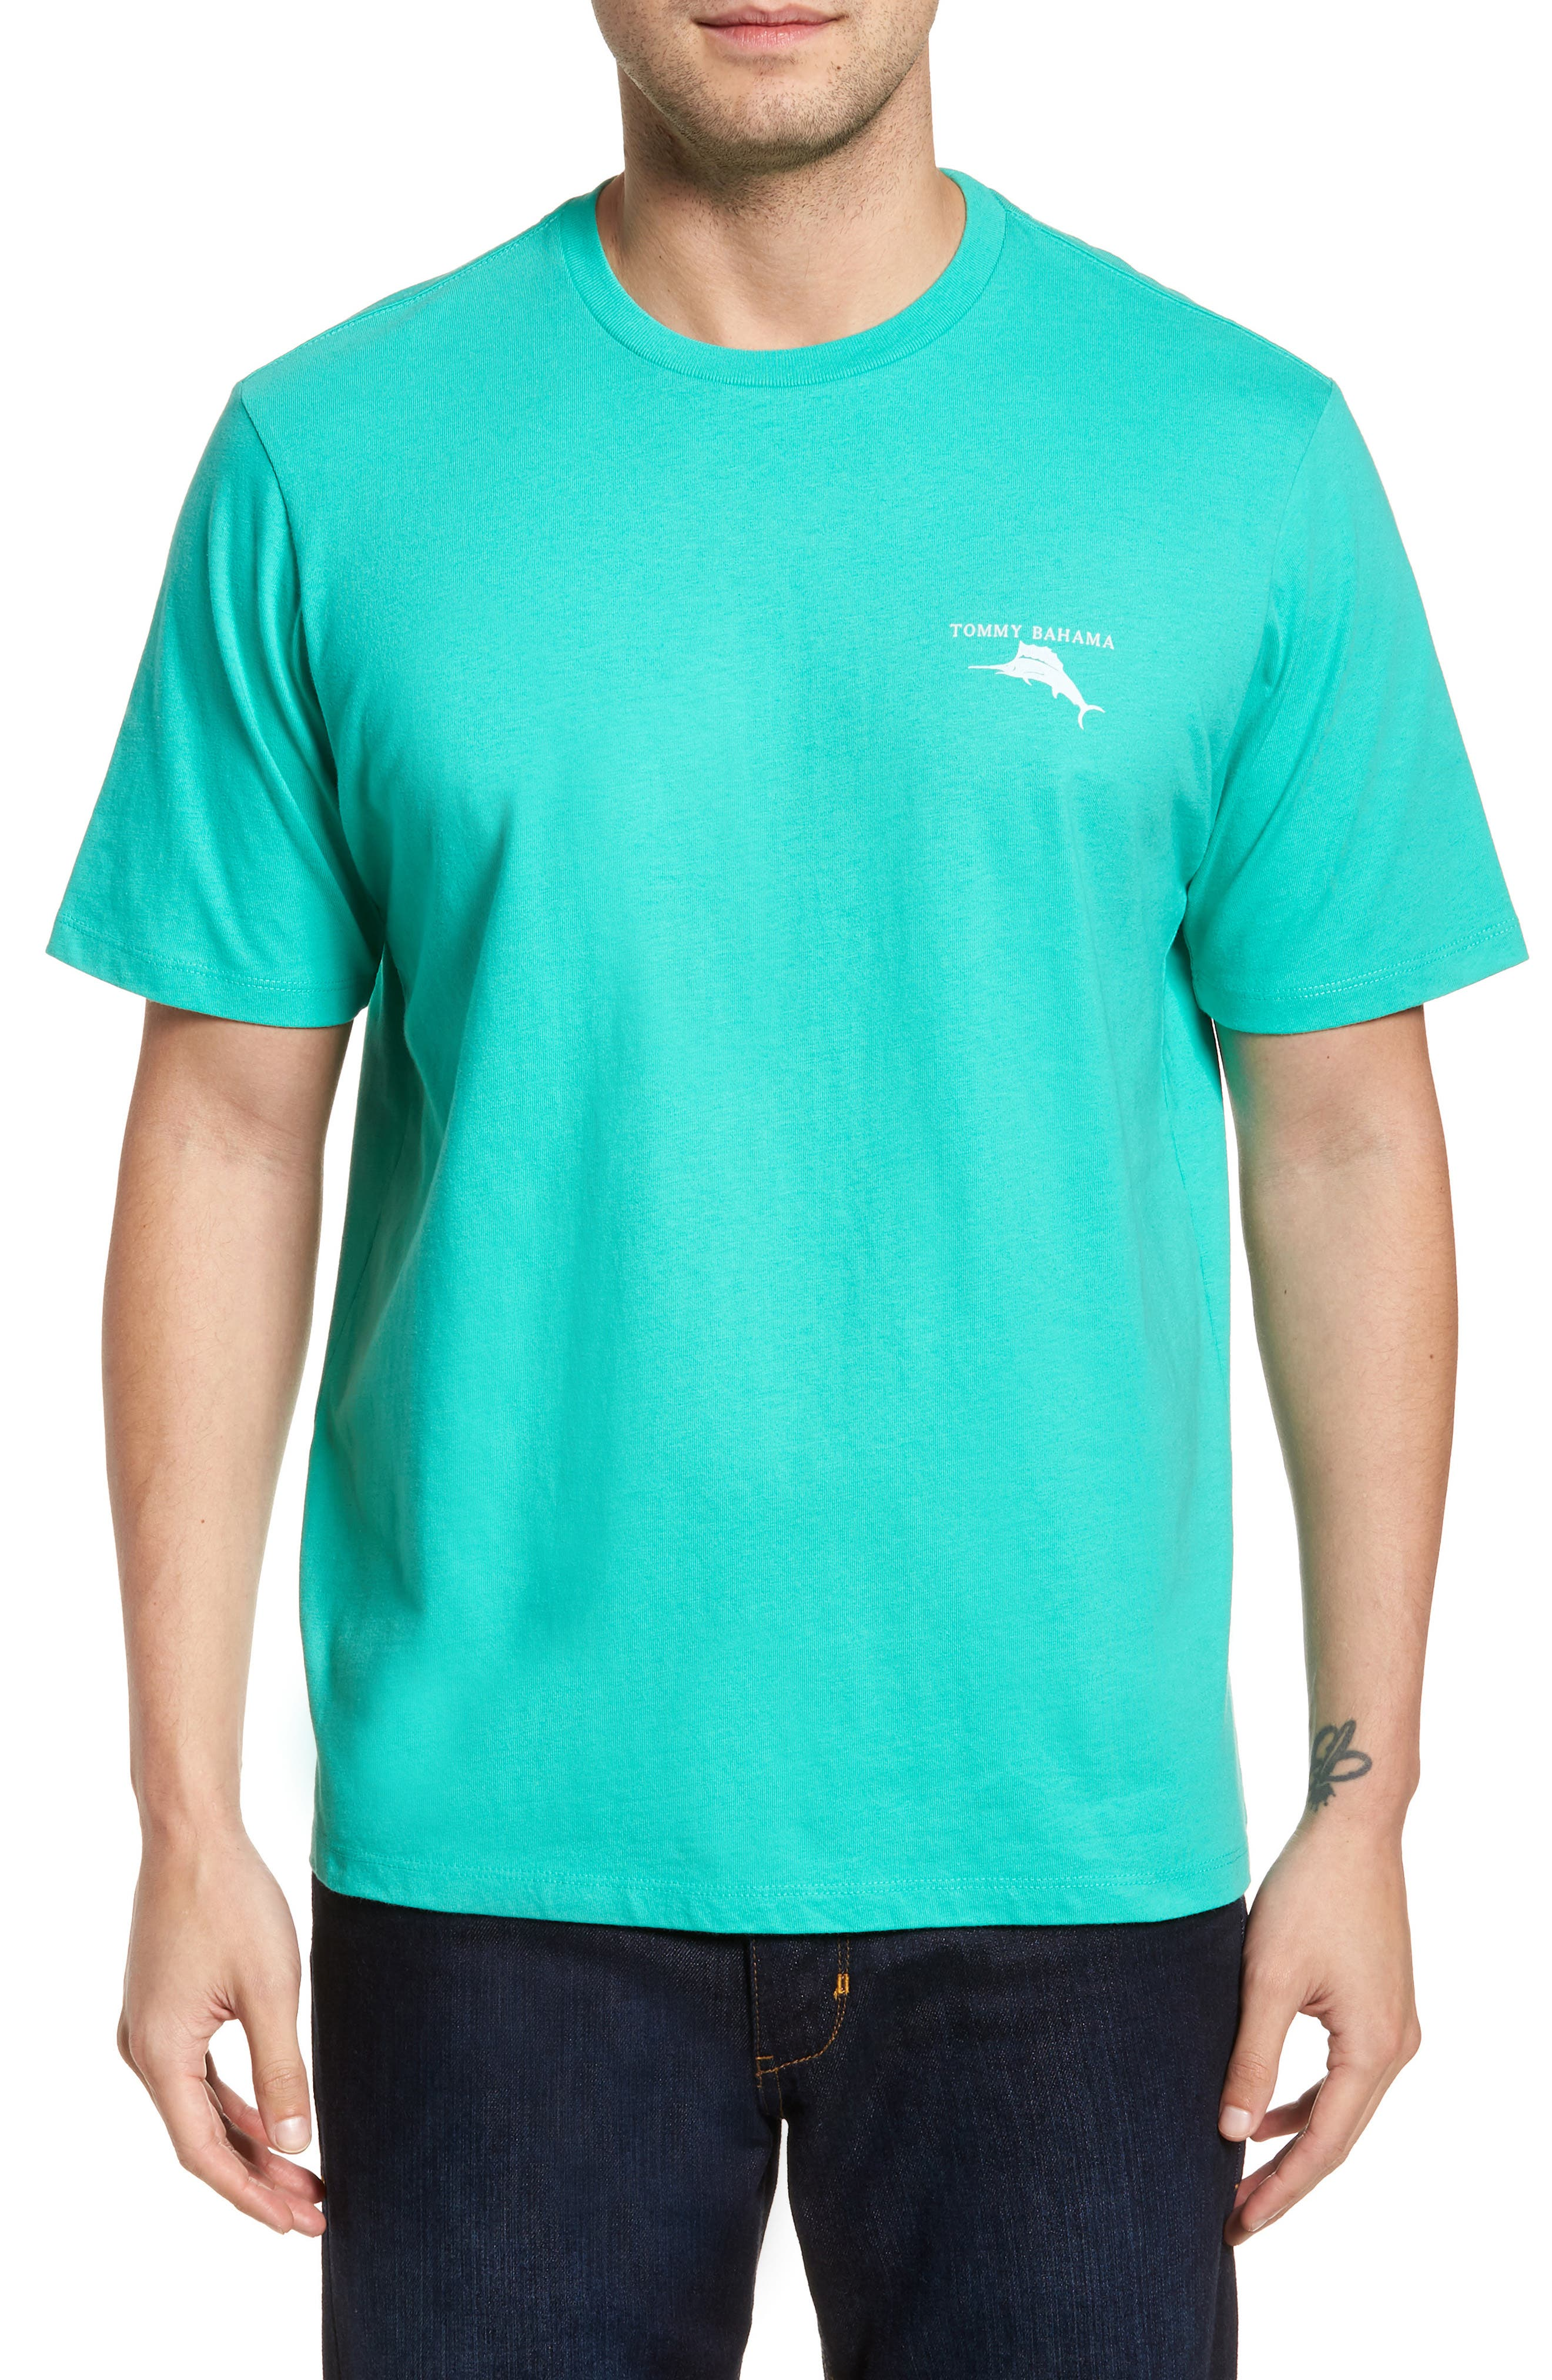 Keys to Happiness T-Shirt,                             Main thumbnail 1, color,                             Cave Green